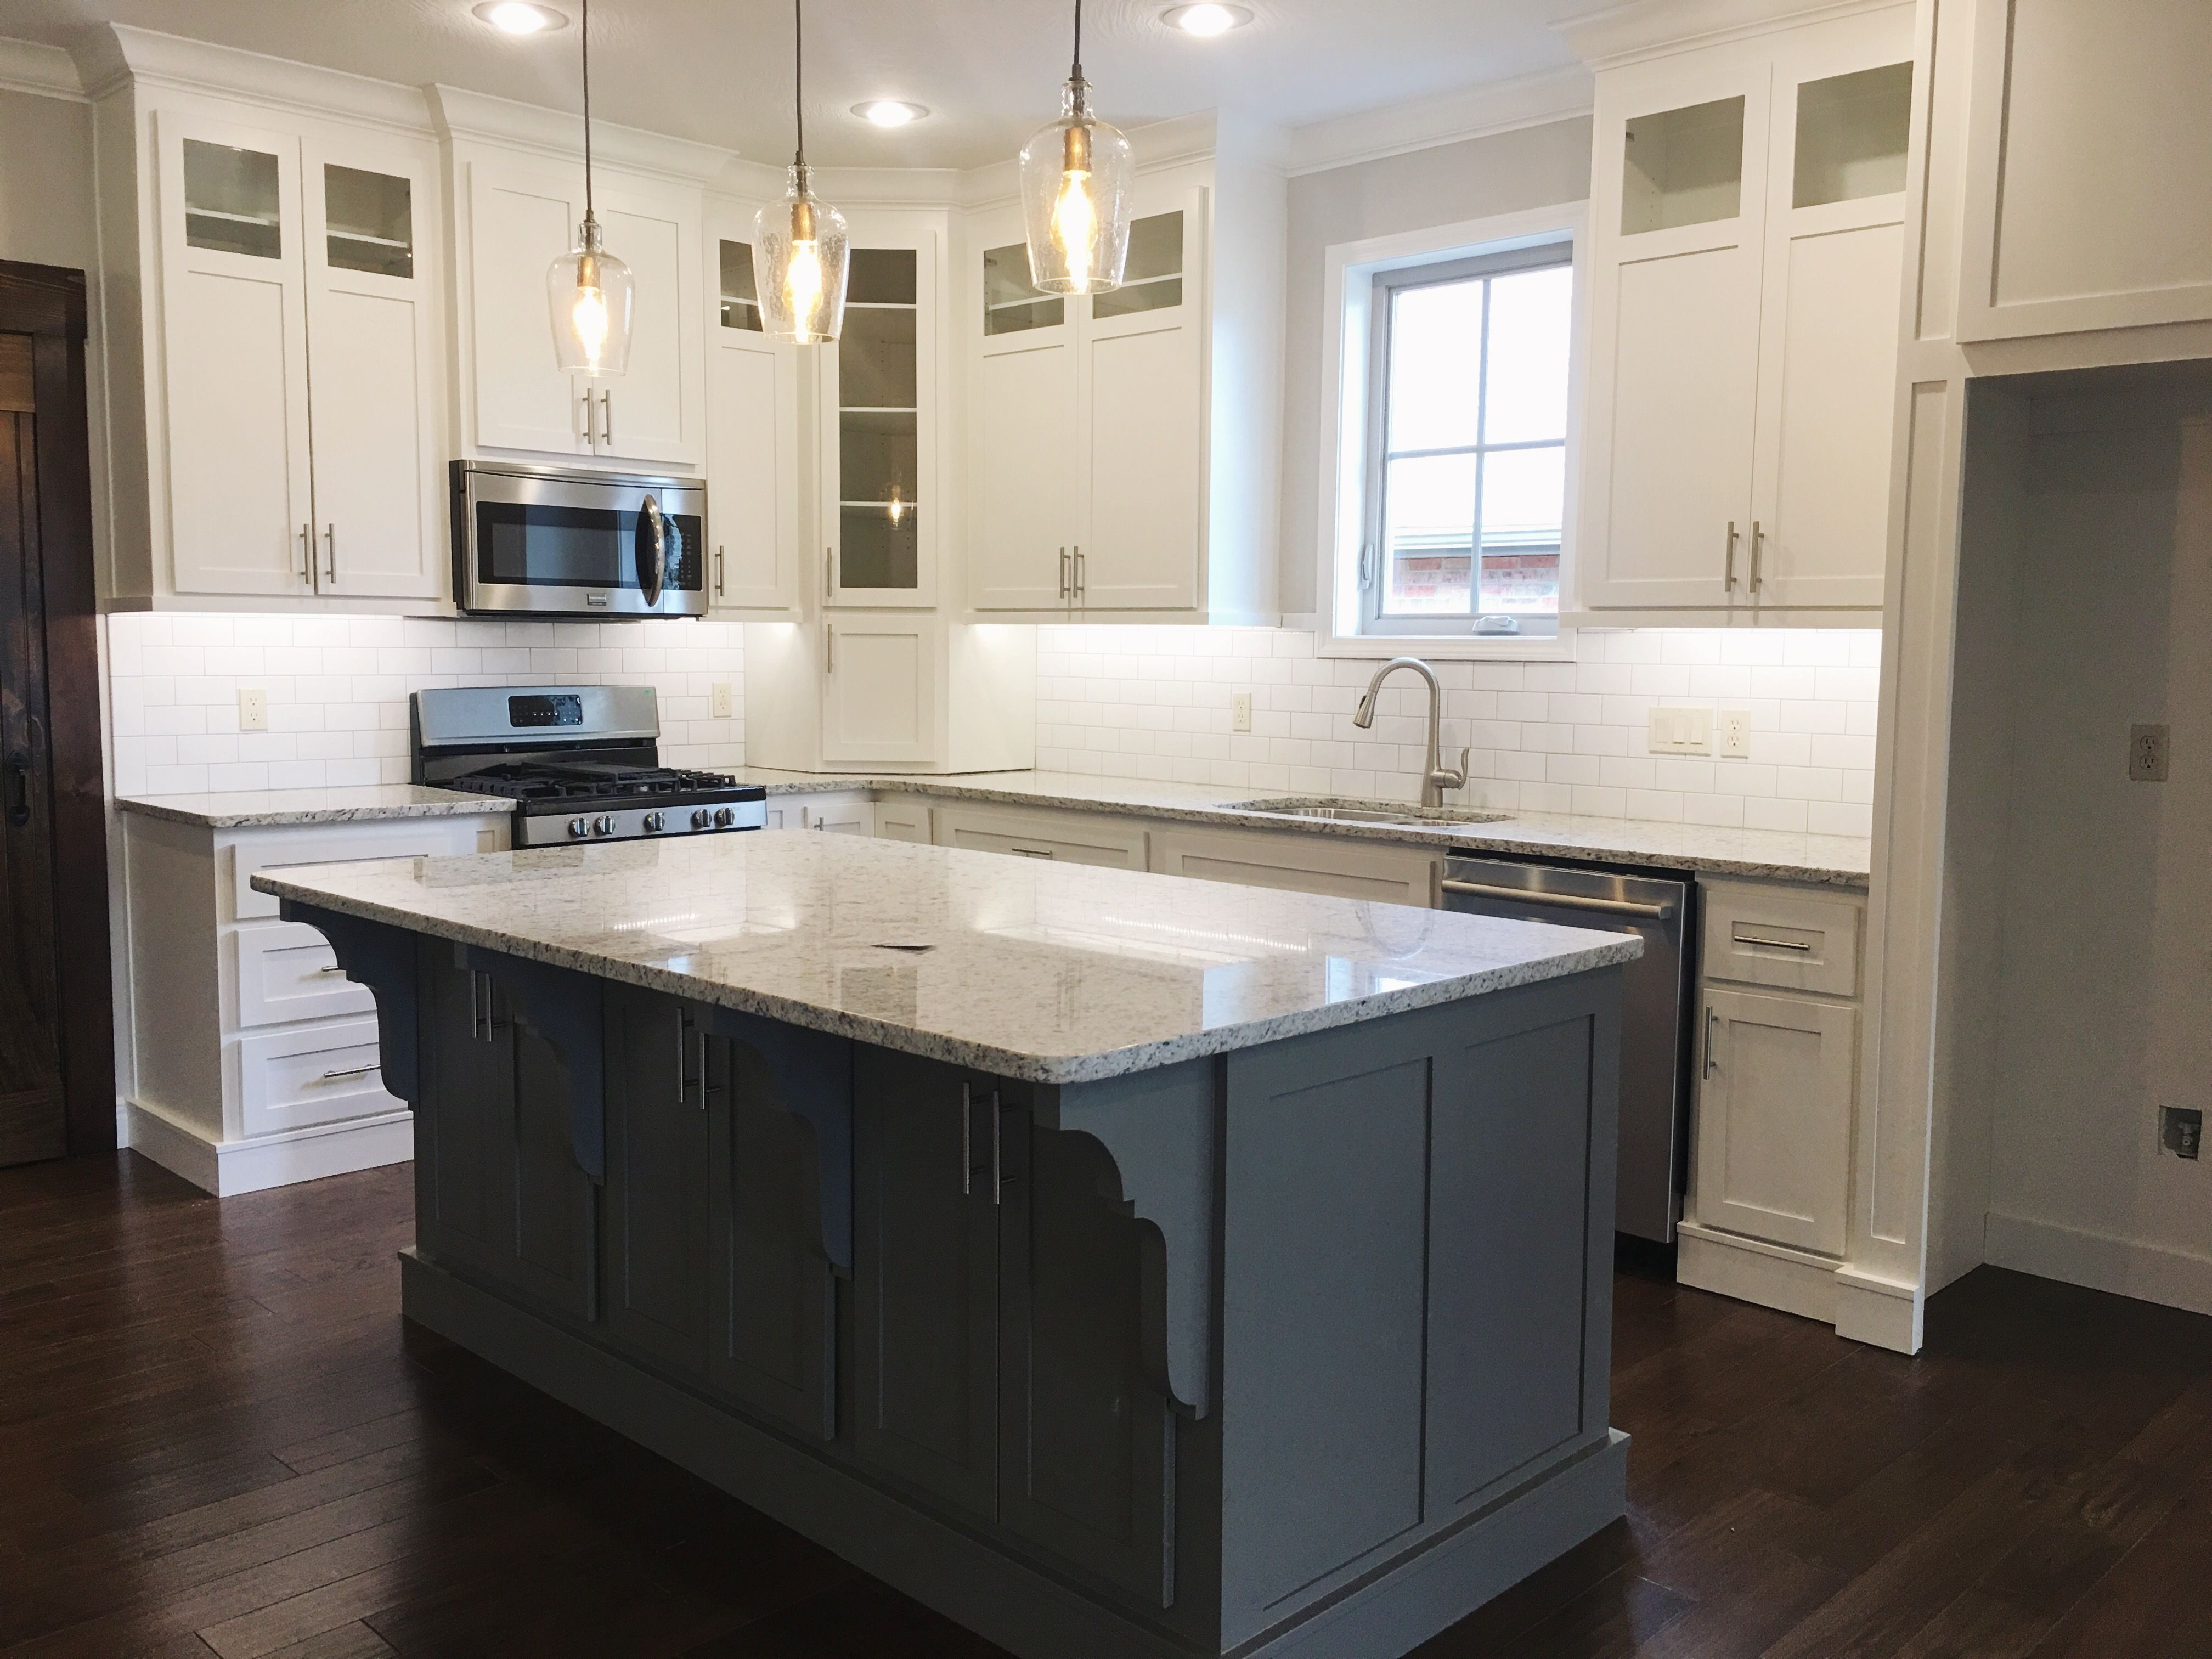 Best Farmhouse Kitchen With Painted Cabinets Sherwin Williams 400 x 300